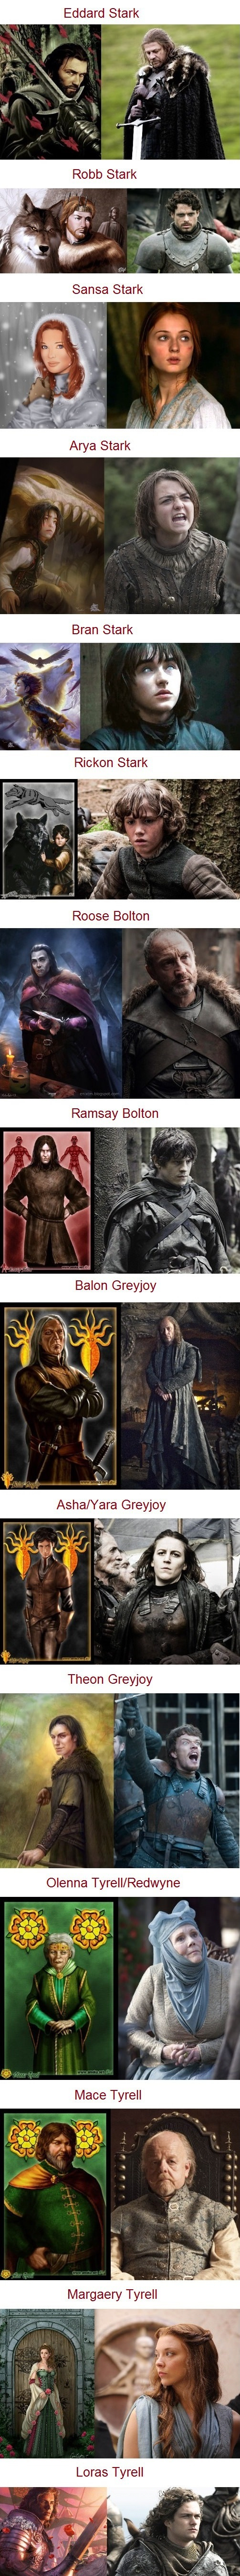 game-of-thrones-characters-book-part-two